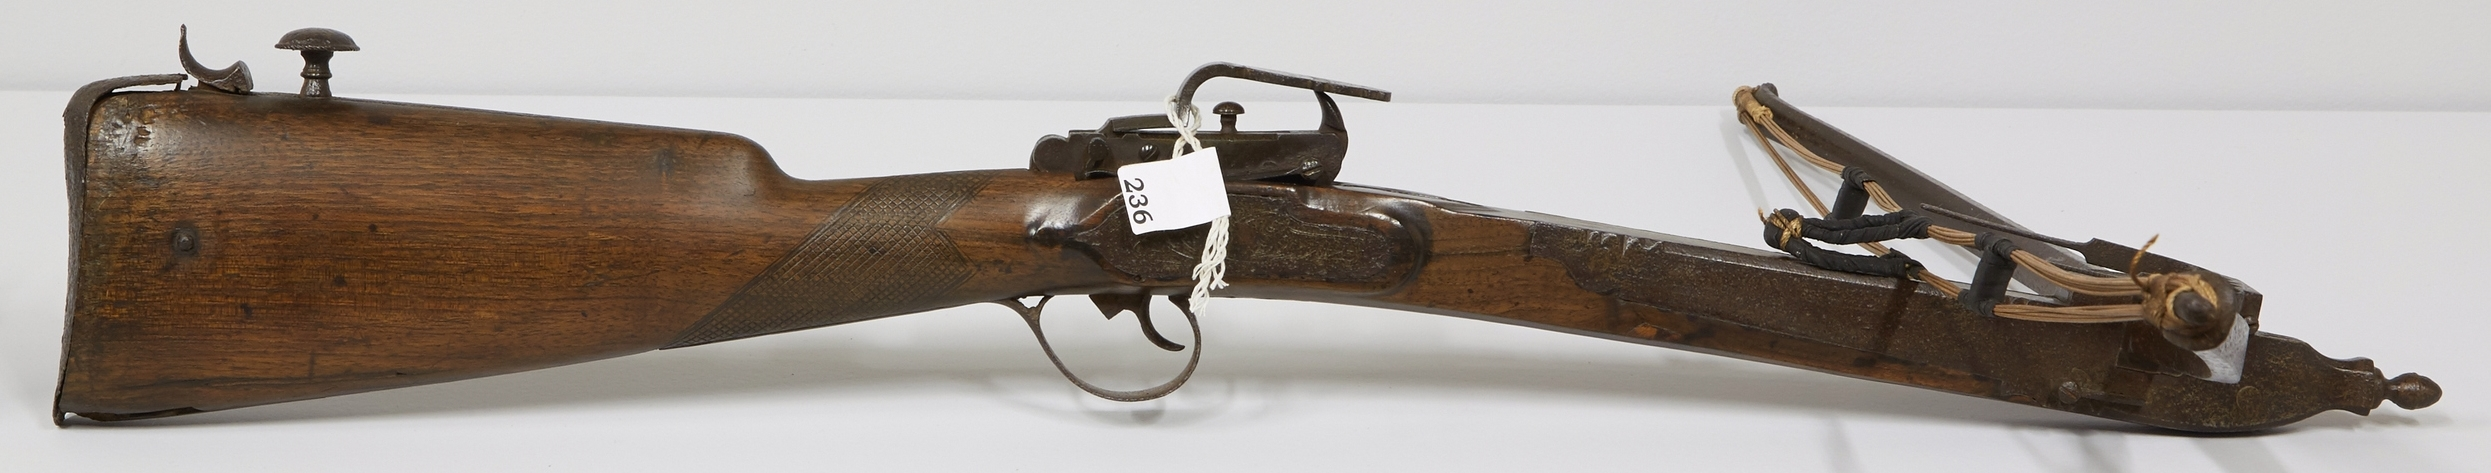 After waxing: antique crossbow